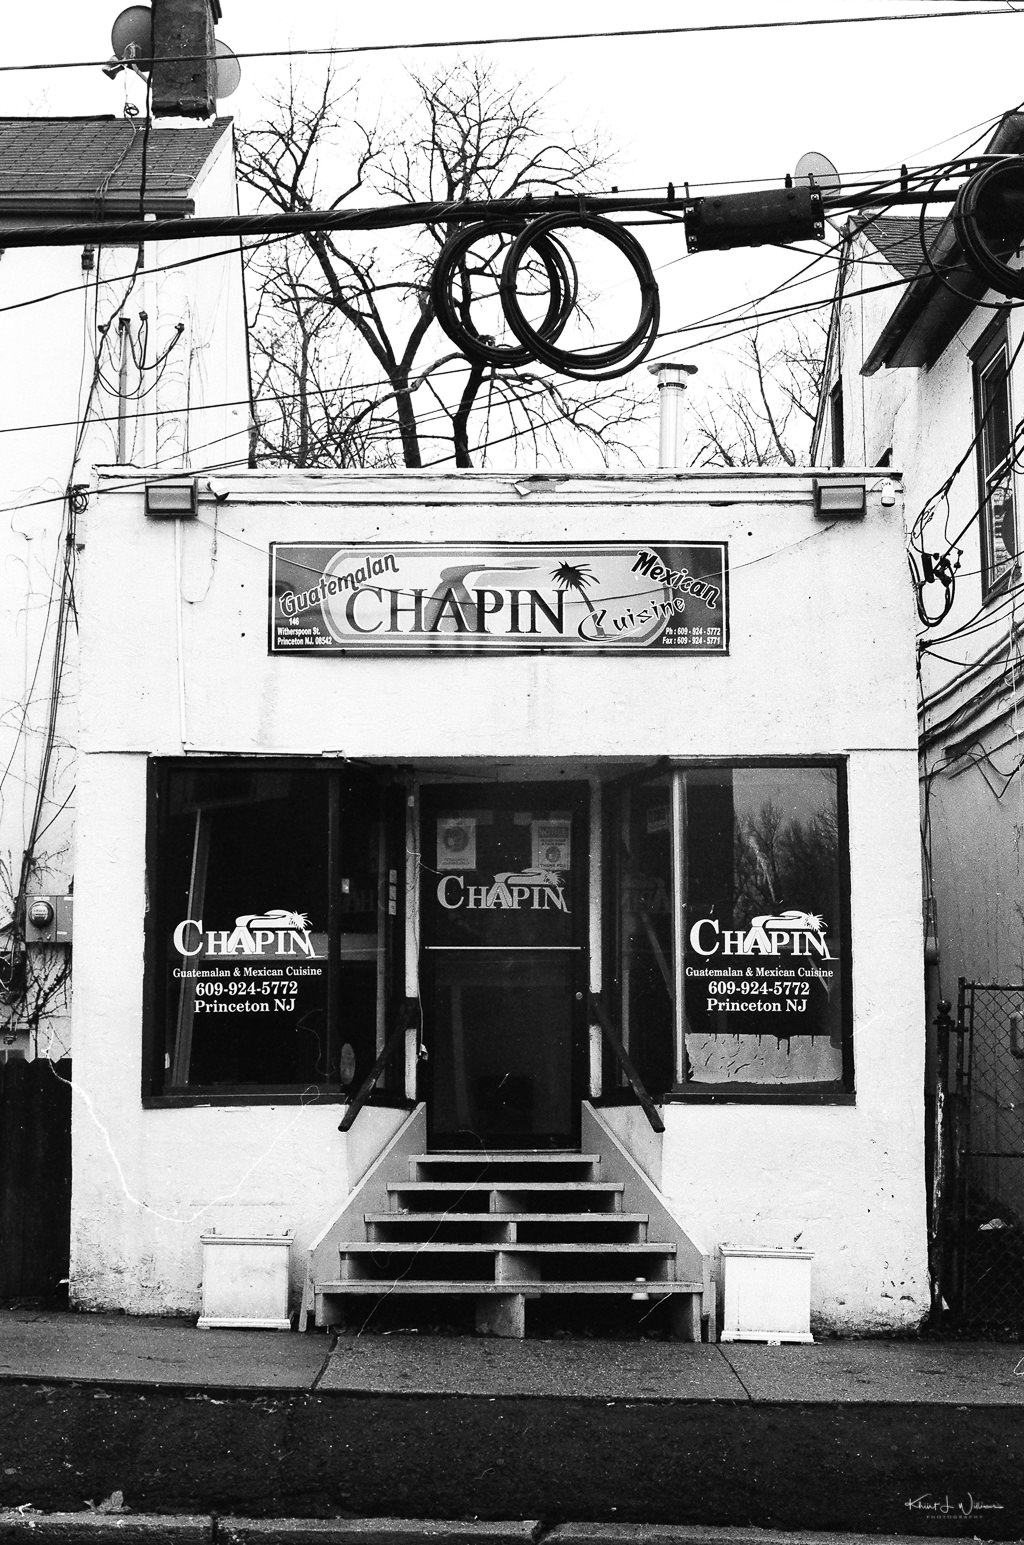 Chapin Guatemalan and Mexican Cuisine